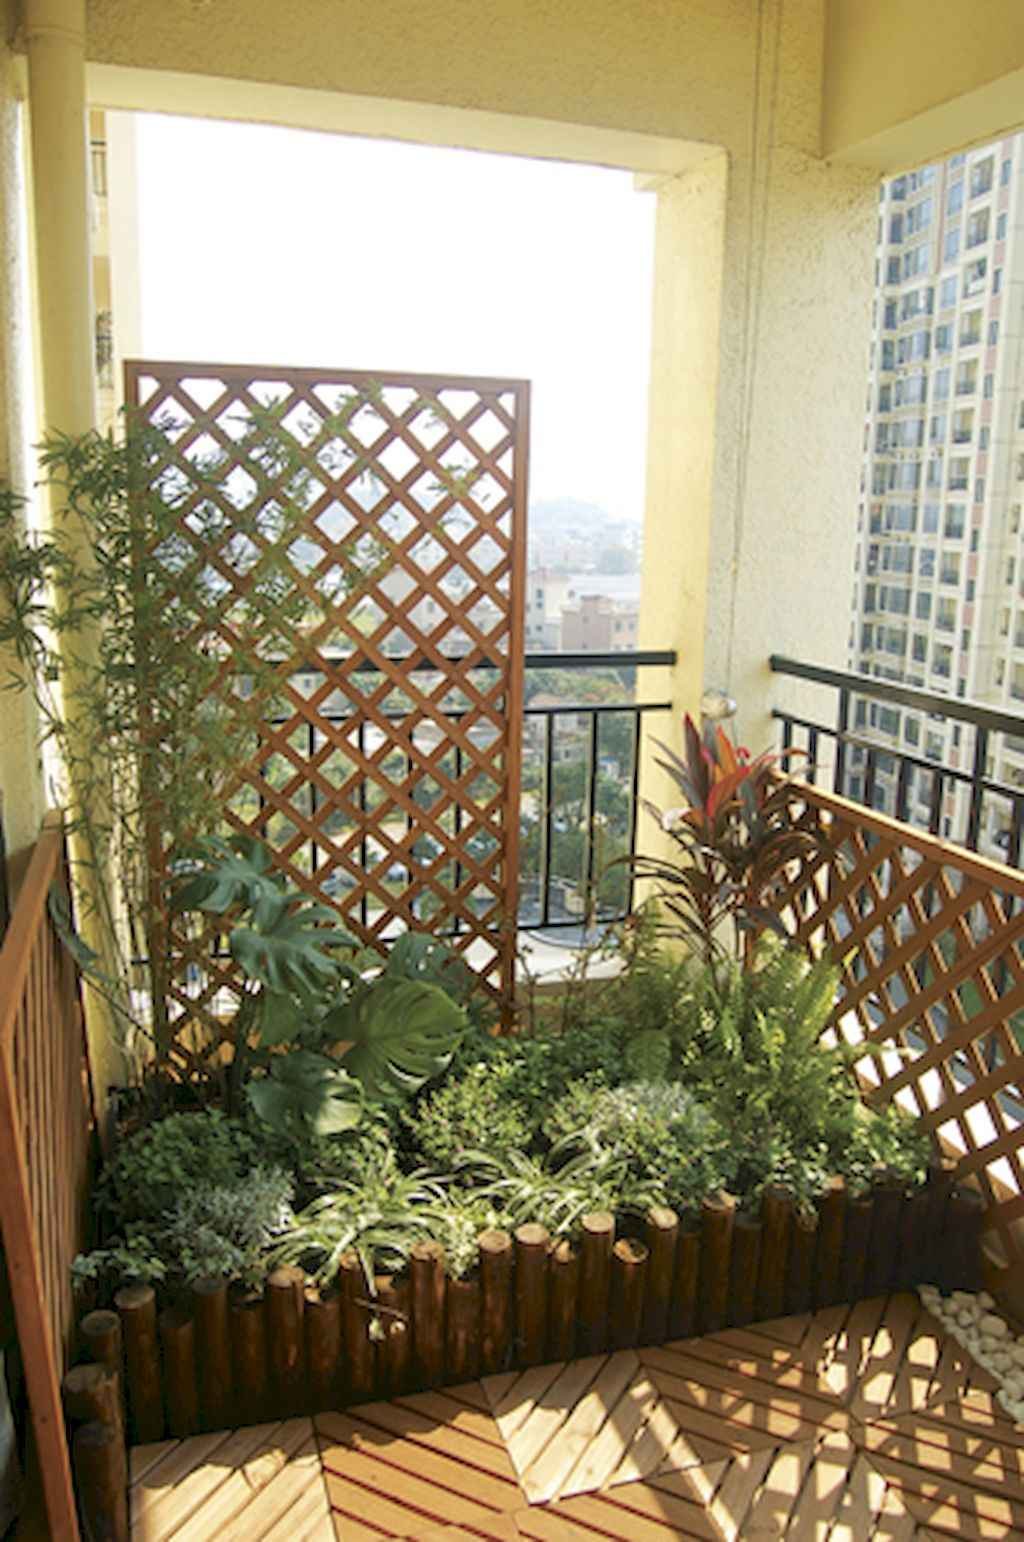 Cozy small apartment balcony decorating ideas 52 for Cozy balcony ideas